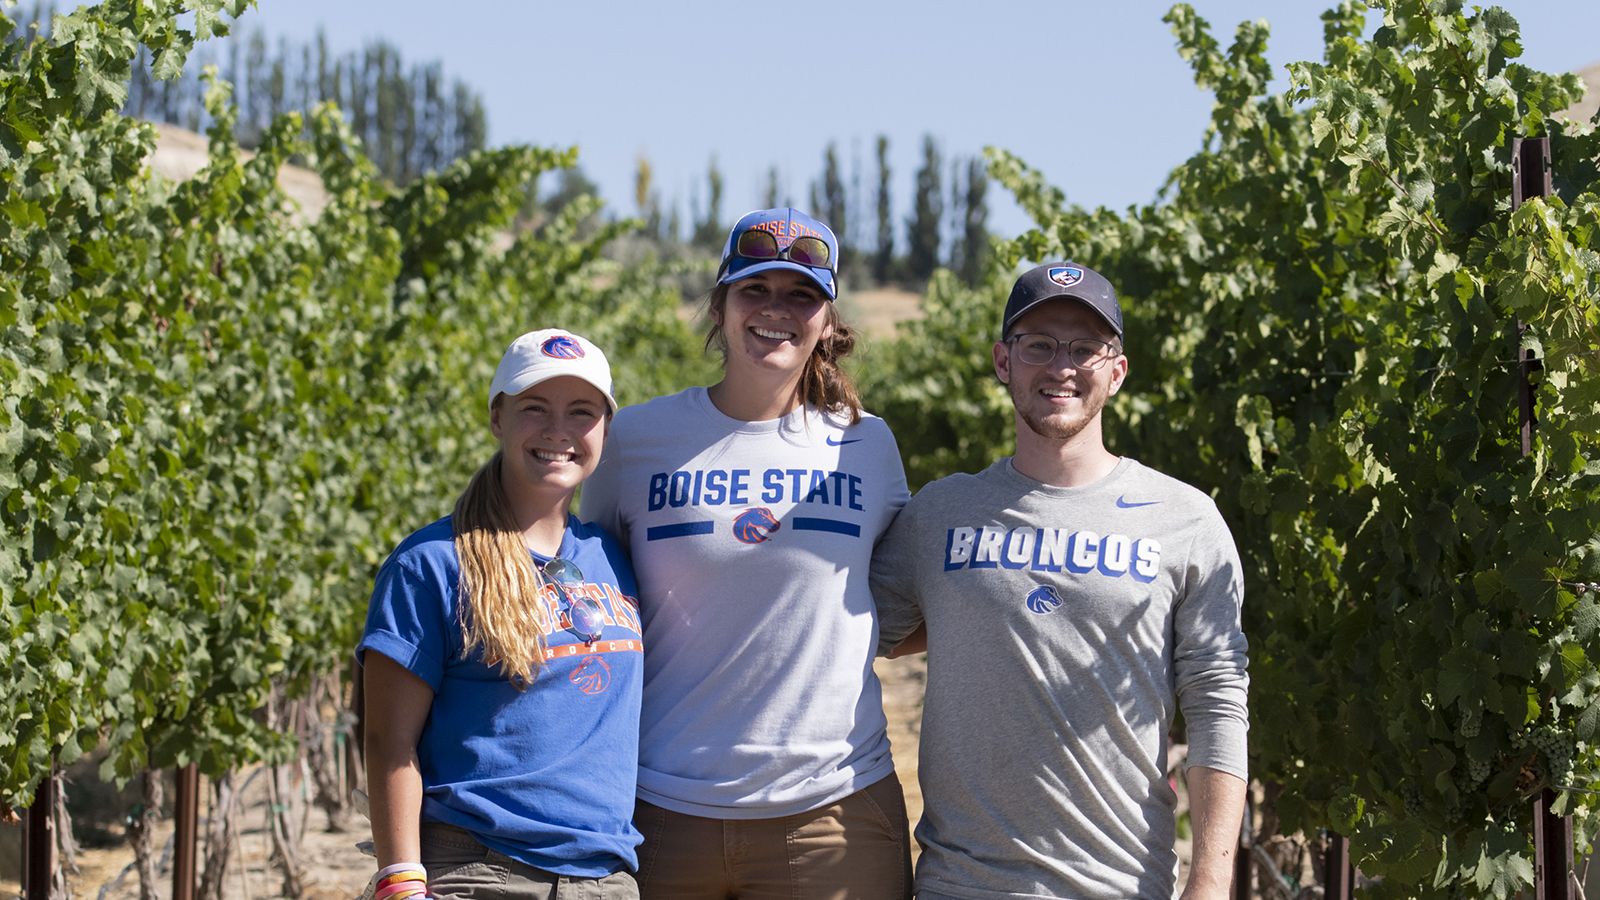 Three students stand side by side in vineyard